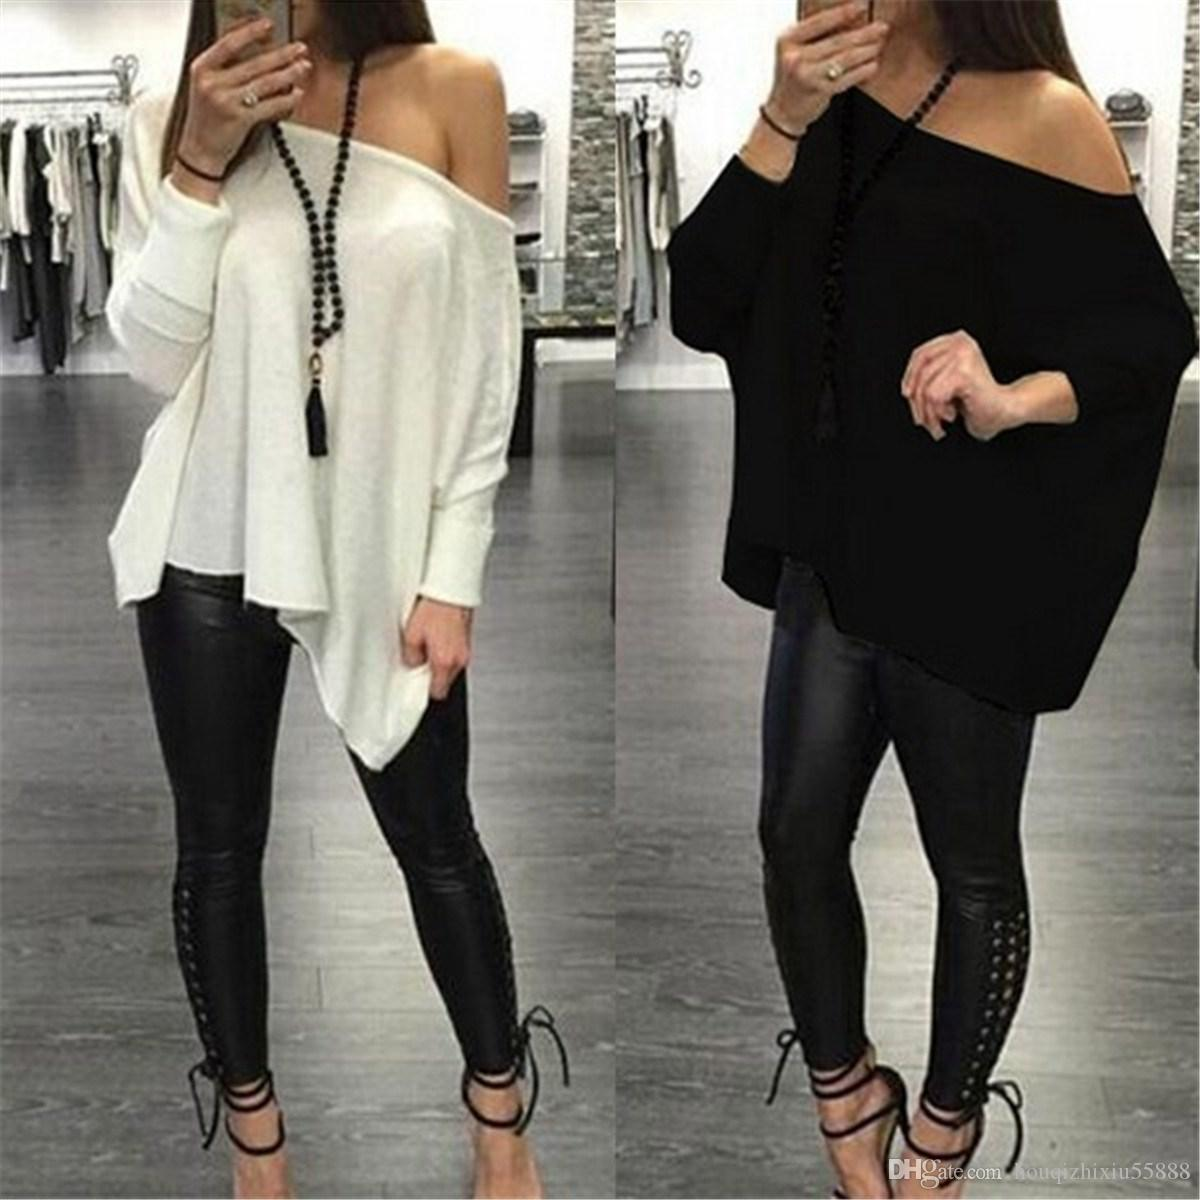 Design your own t-shirt long sleeve -  Women T Shirt Off Shoulder Long Sleeve Asymmetry Loose Tops Shirts Sexy Solid Black White Tee Femme Long Sleeve Tee Shirts Design Your Own T Shirts From